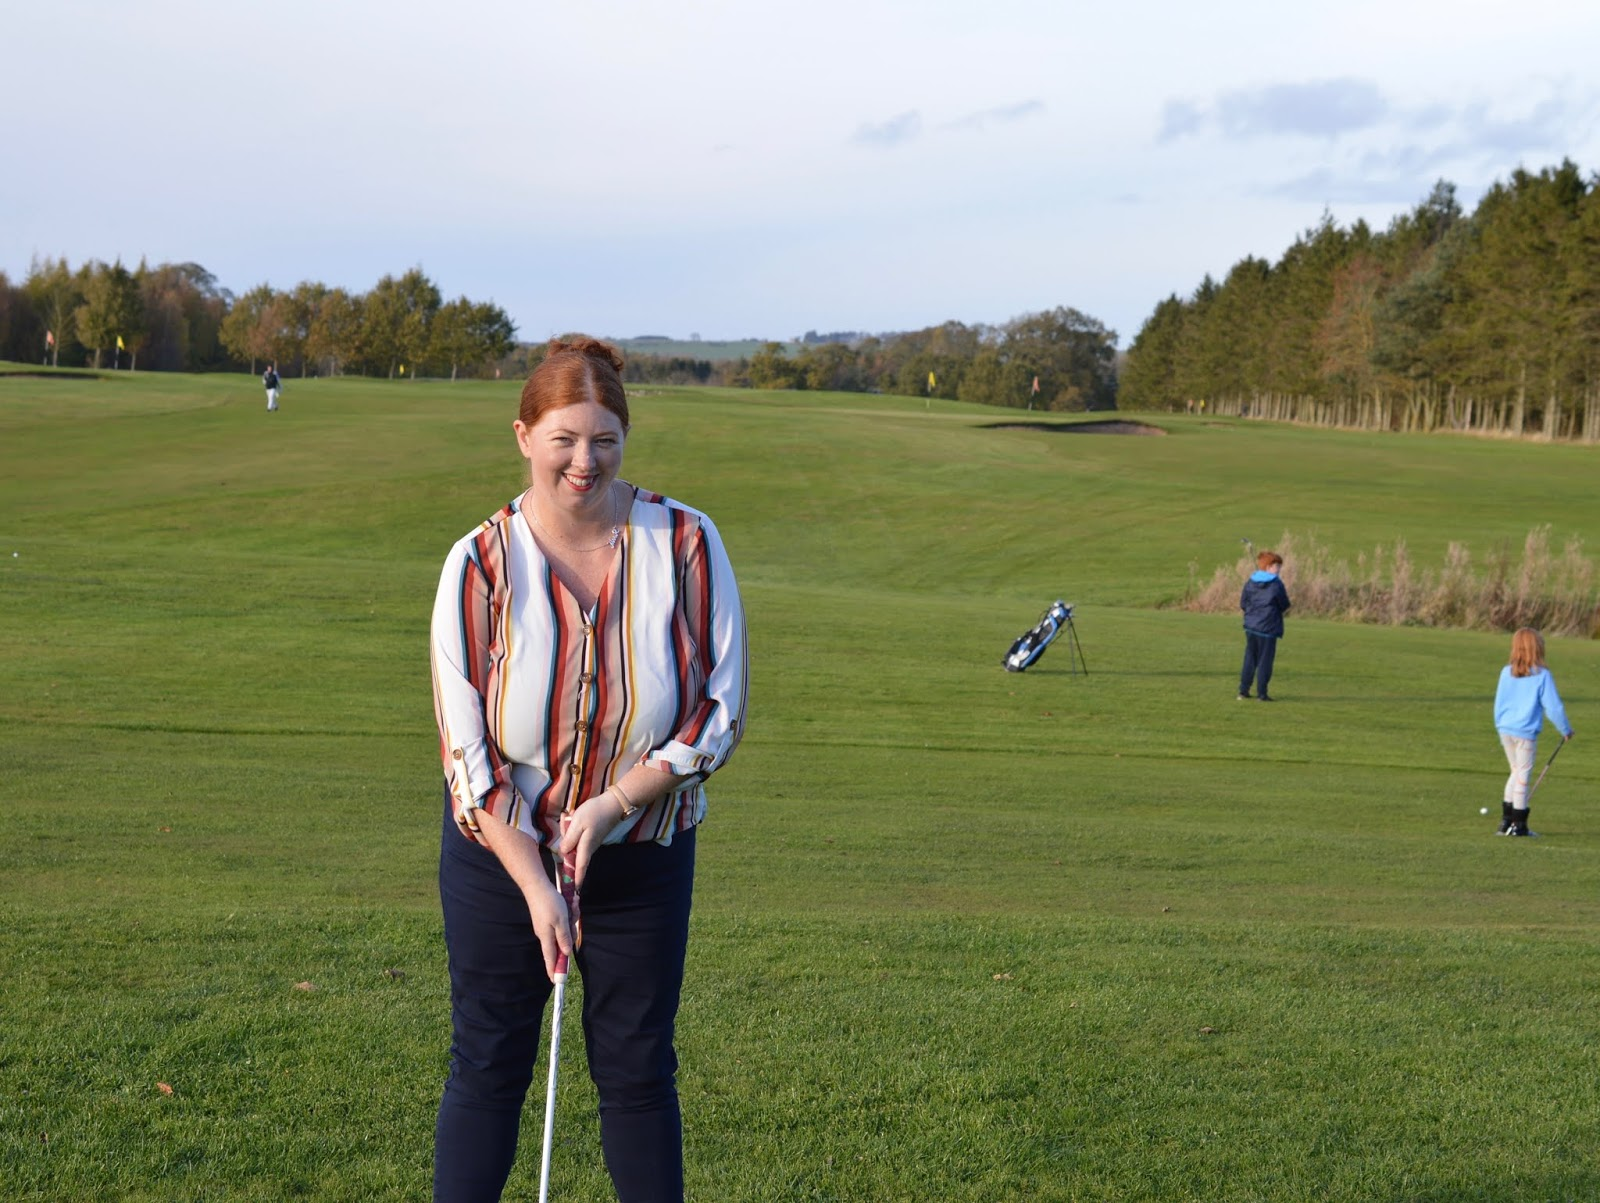 10 Reasons to Stay at Matfen Hall in Northumberland with Kids  - beginner's golf on the par 3 course